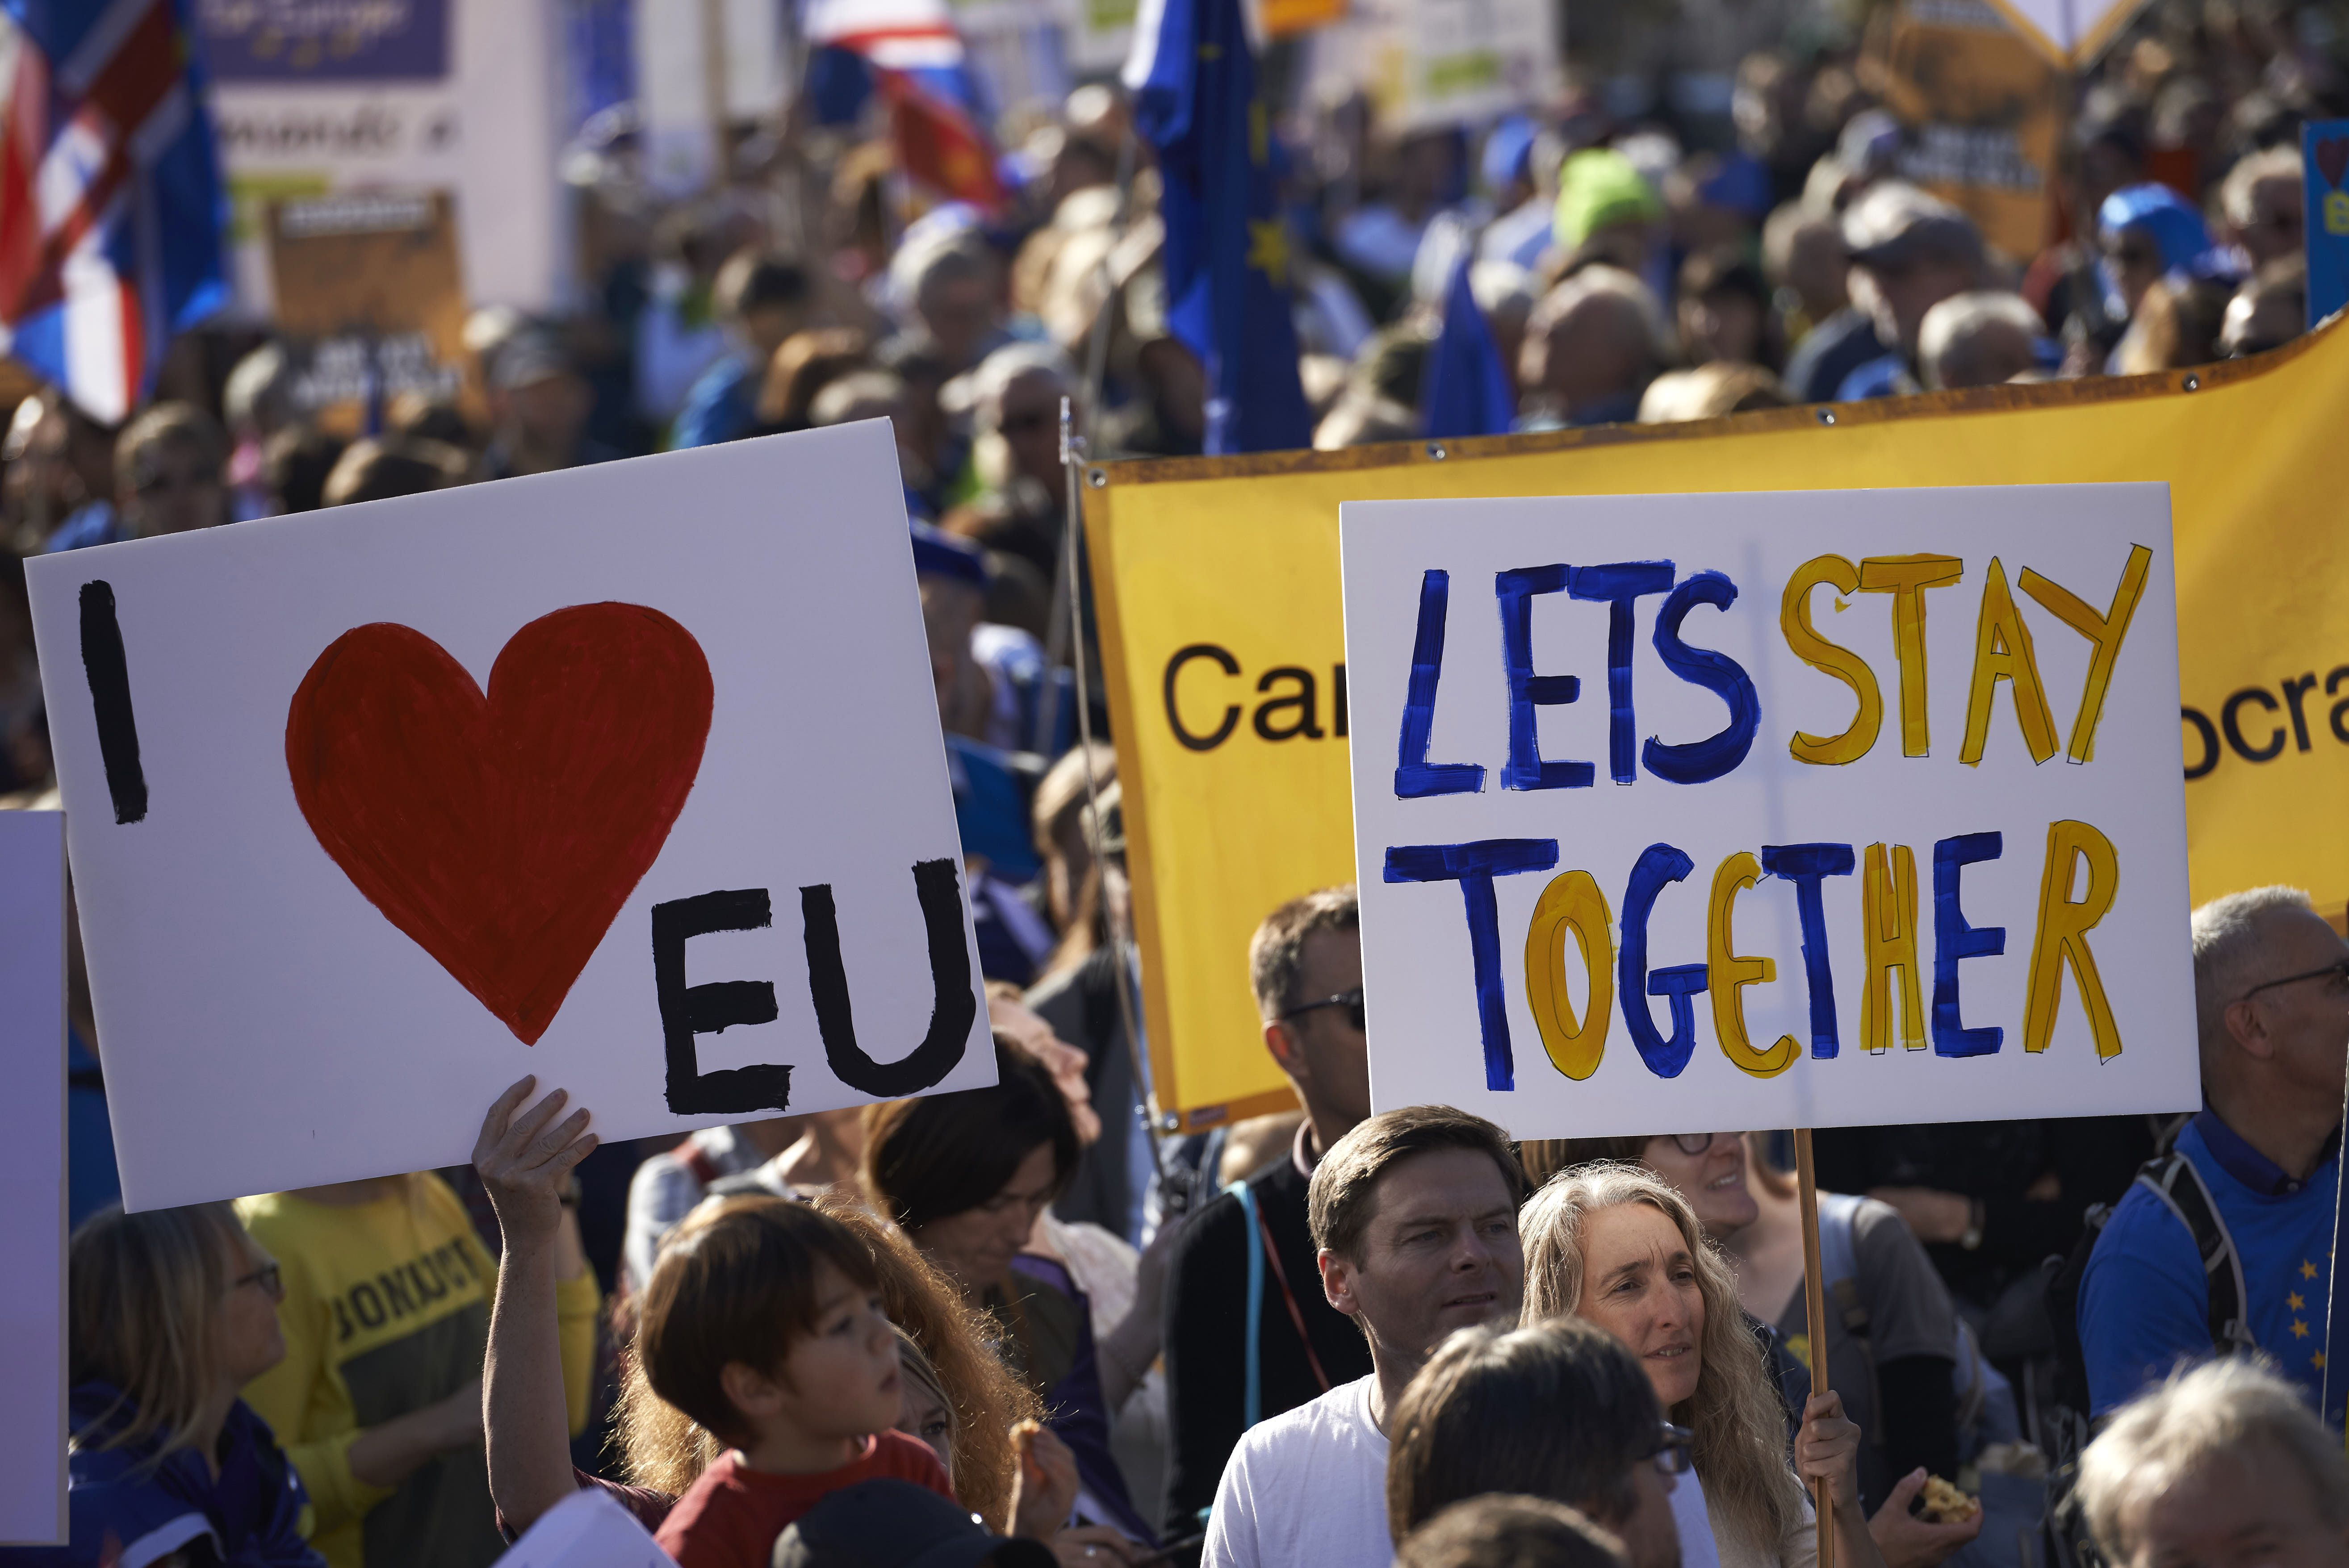 Protestors calling for the European Union to stick together